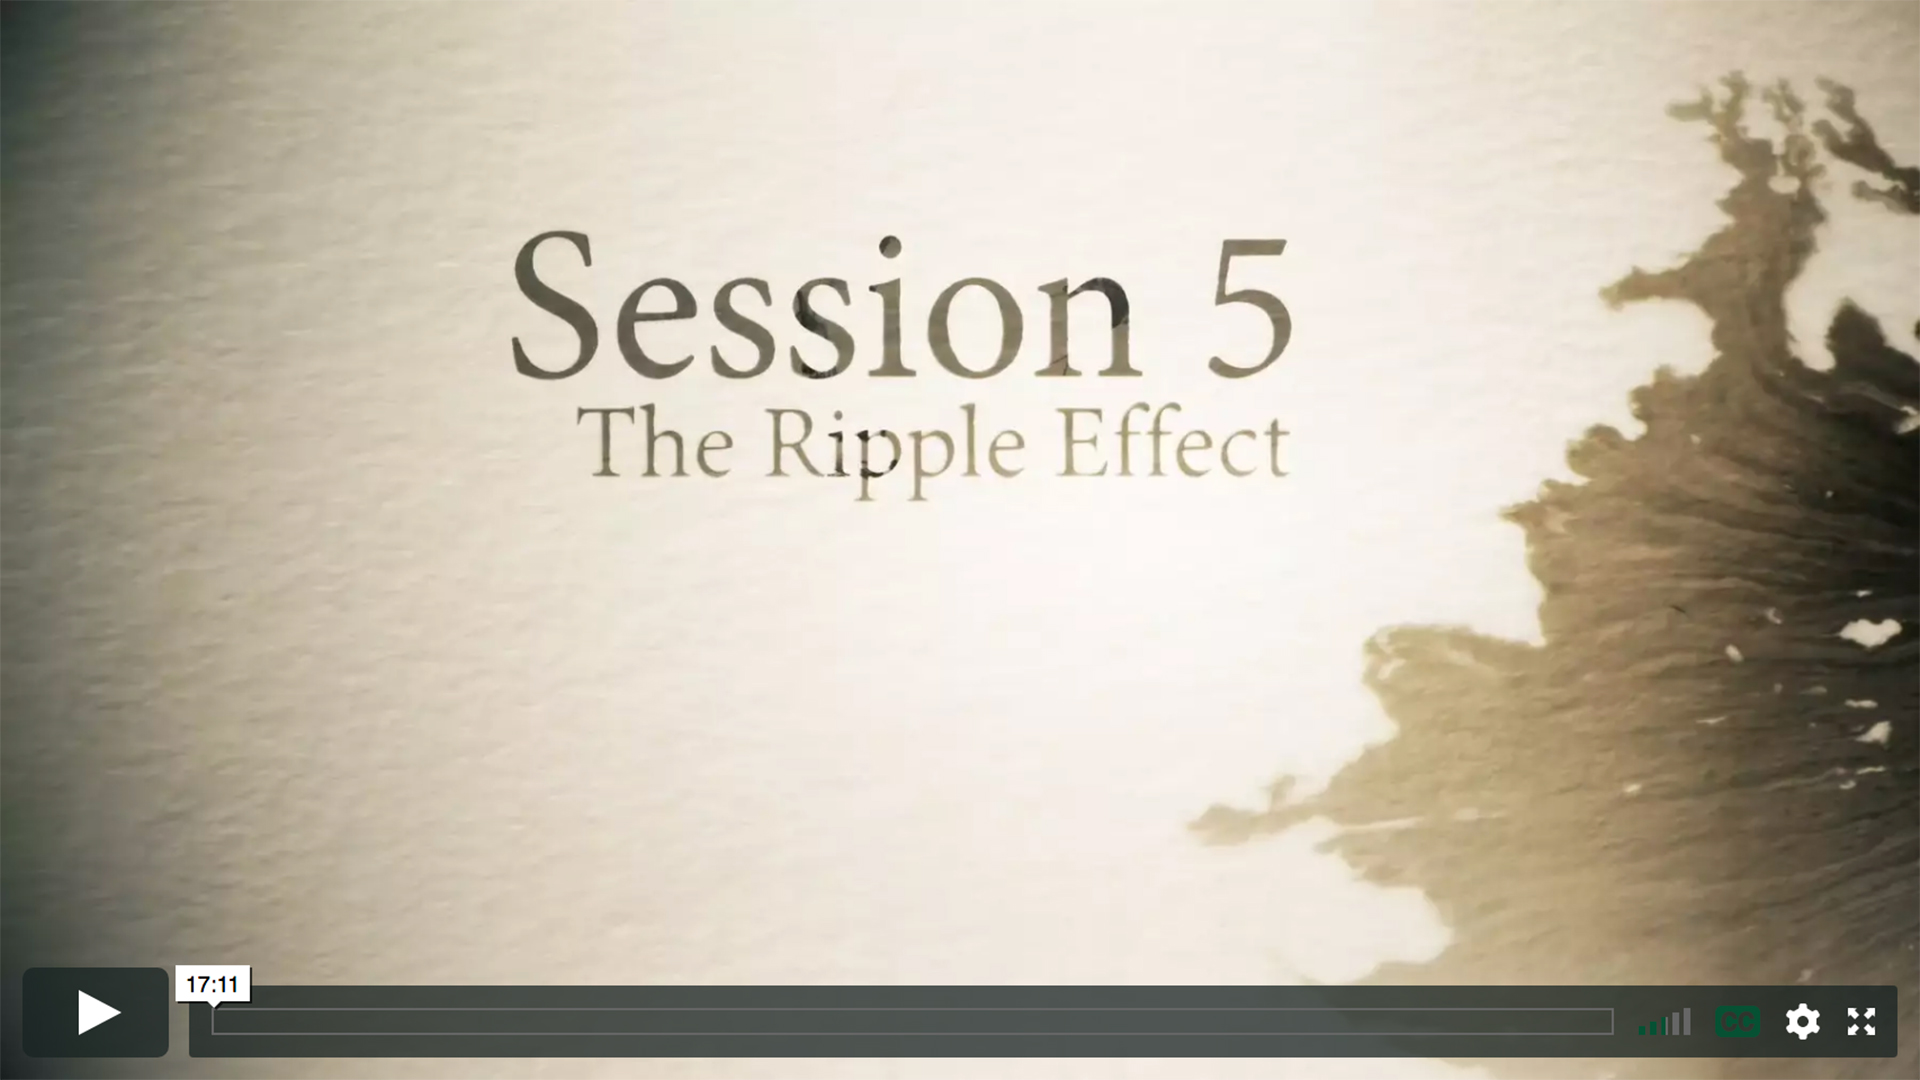 Session 5 - The Ripple Effect